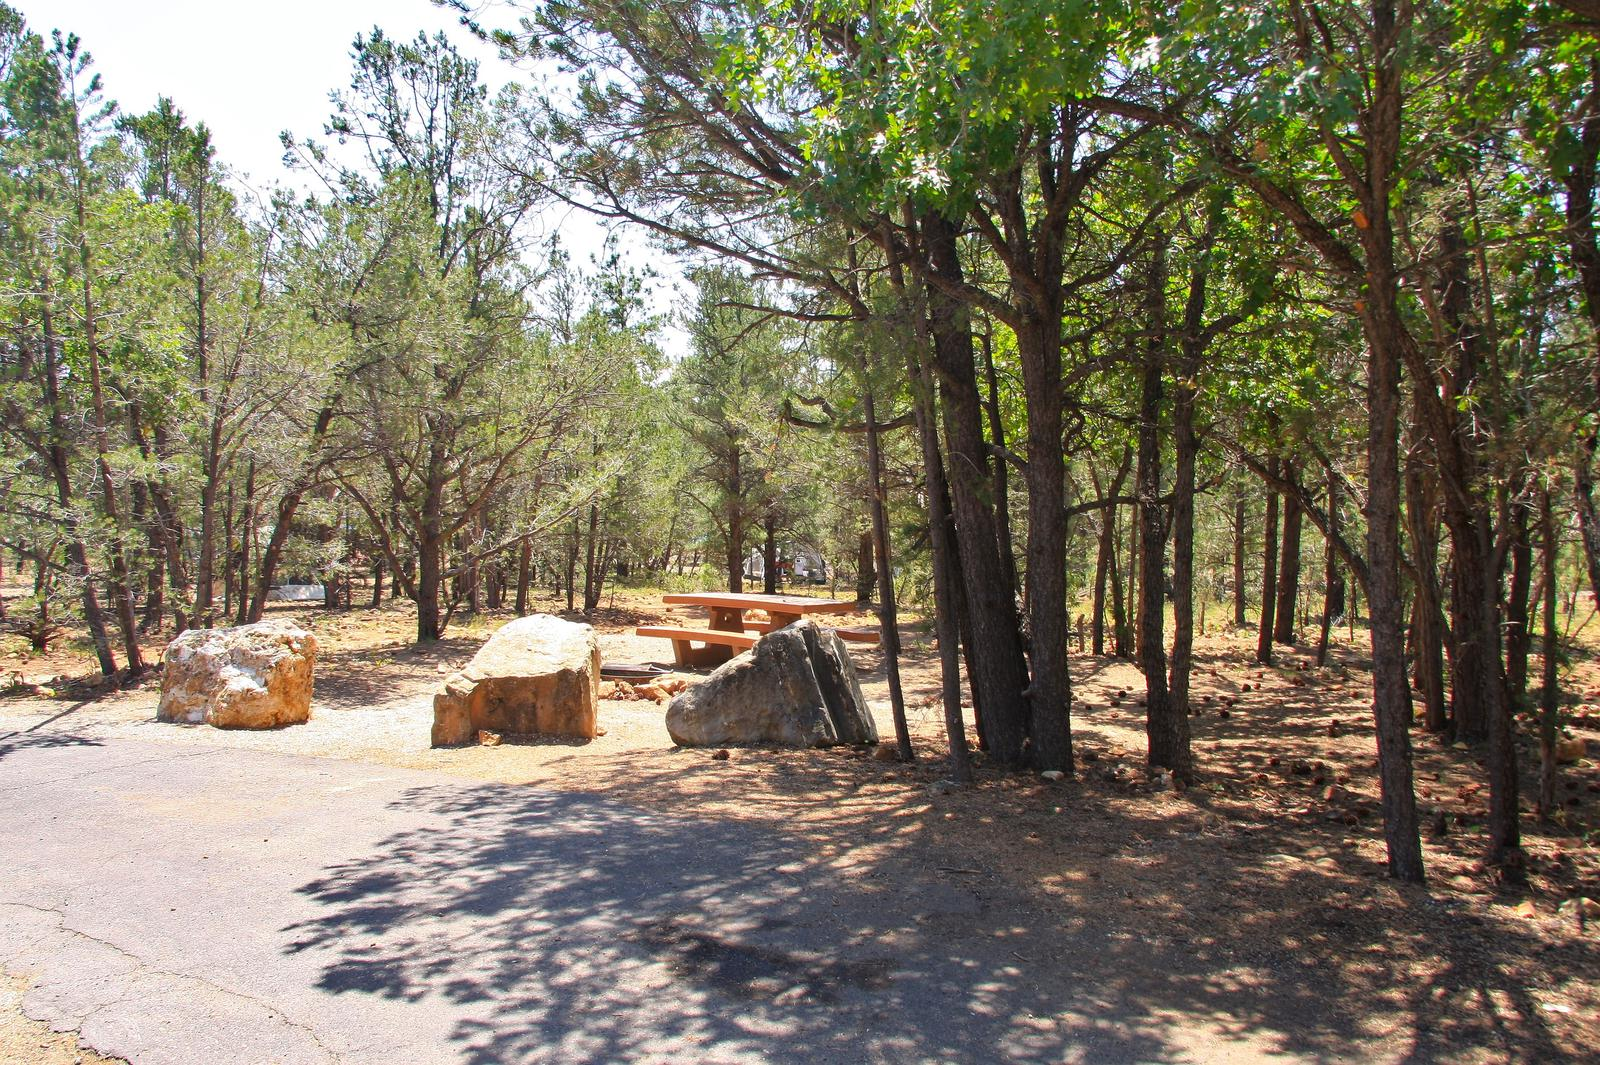 Picnic table, fire pit, and parking spot, Mather CampgroundPicnic table, fire pit, and parking spot for Juniper Loop 132, Mather Campground